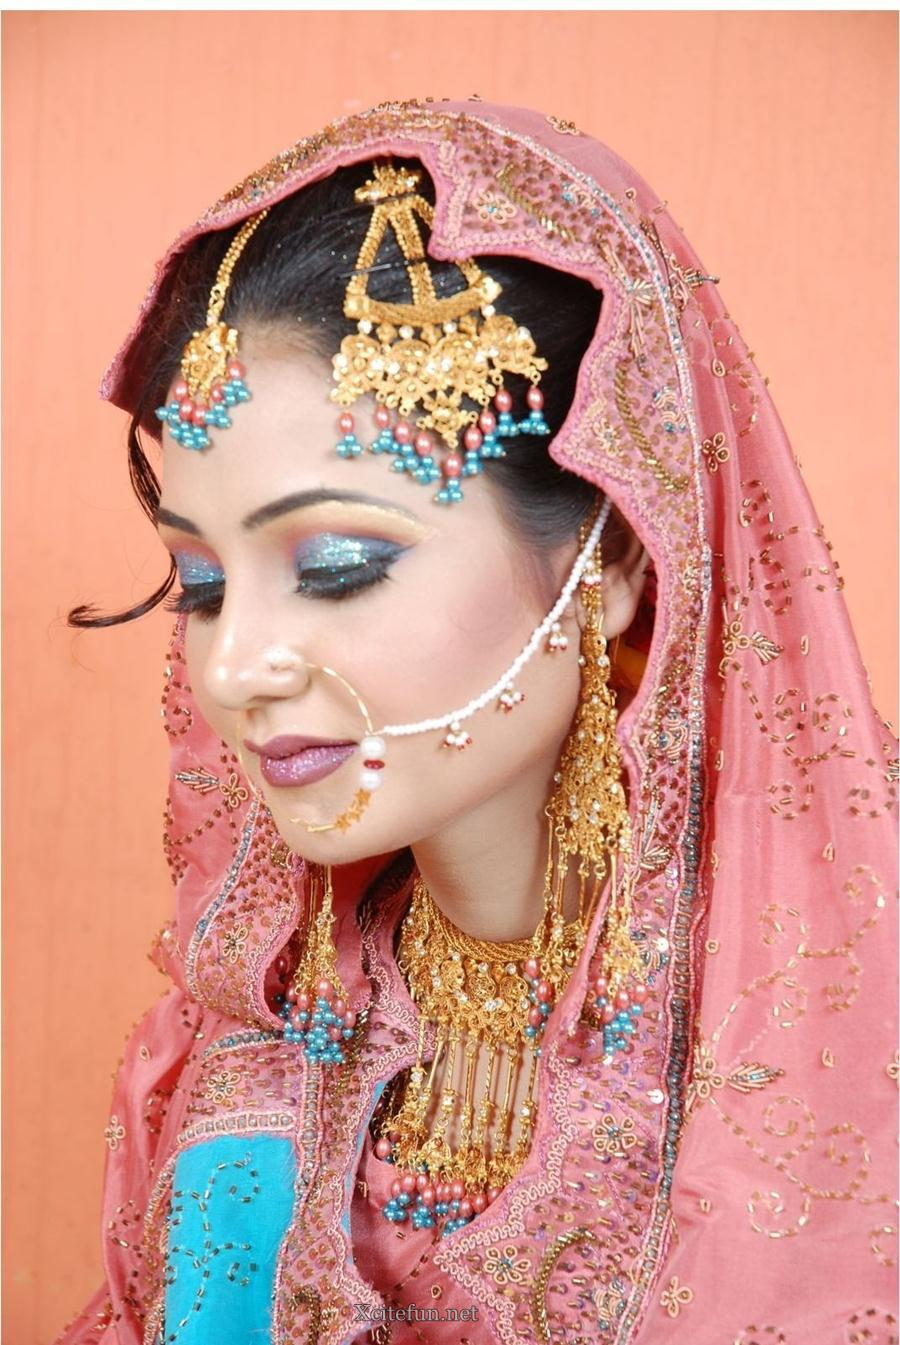 Mehndi Makeup Review : Bridal glorious mehndi design makeup look and dress